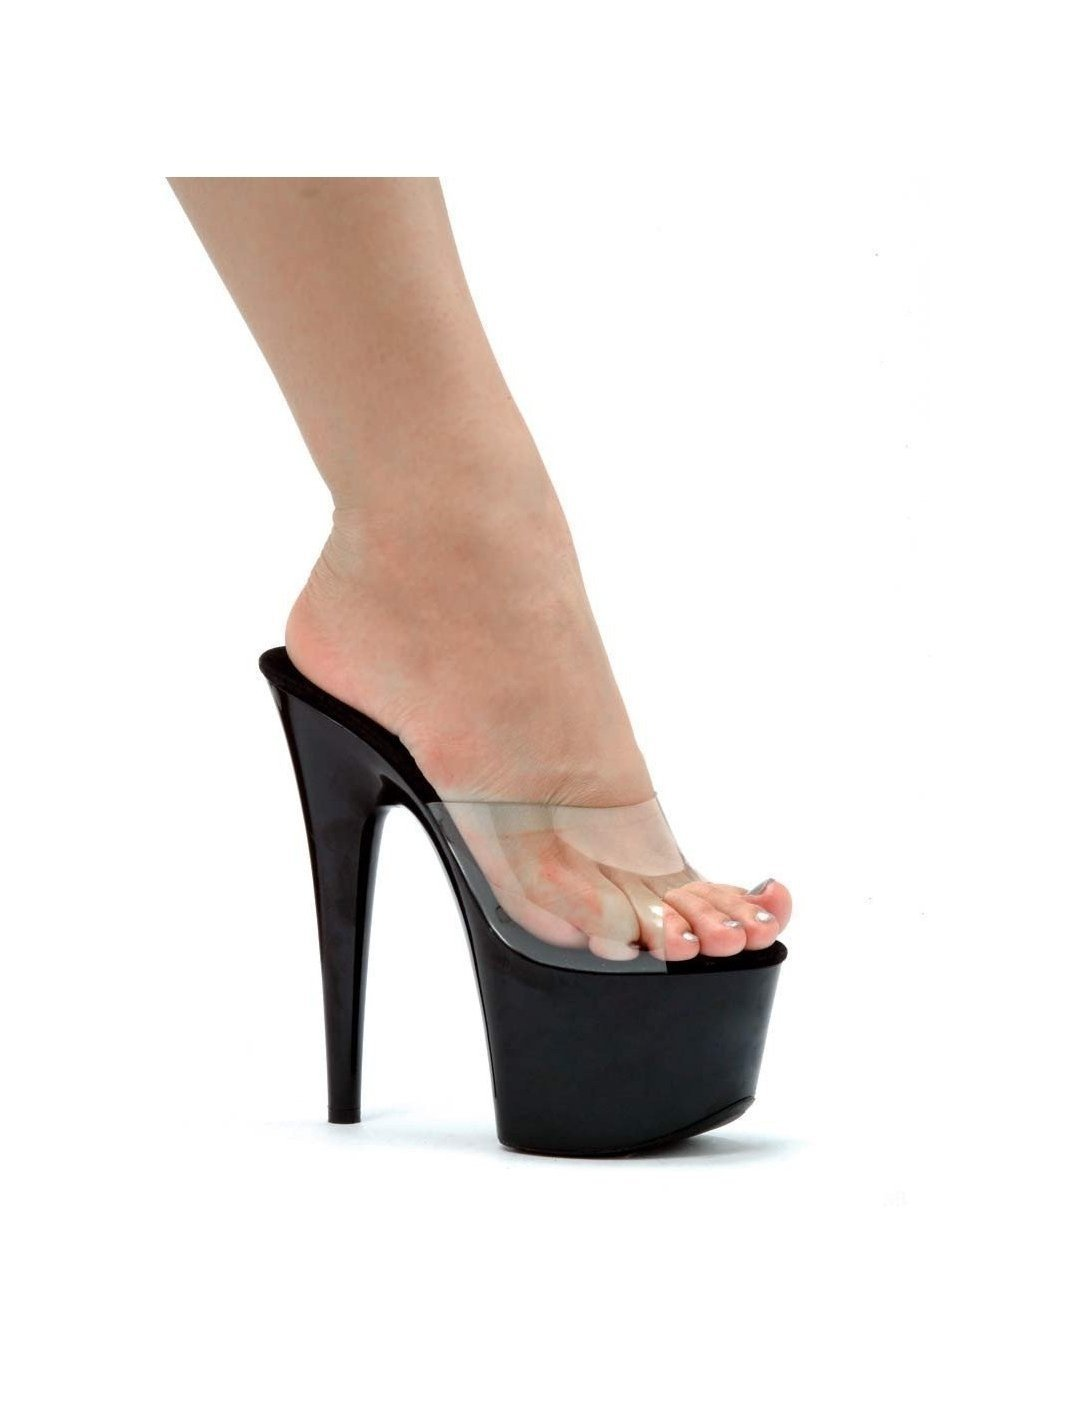 Ellie Shoes E-709-Vanity 7 Pointed Stiletto Mule Clear/Black / 6